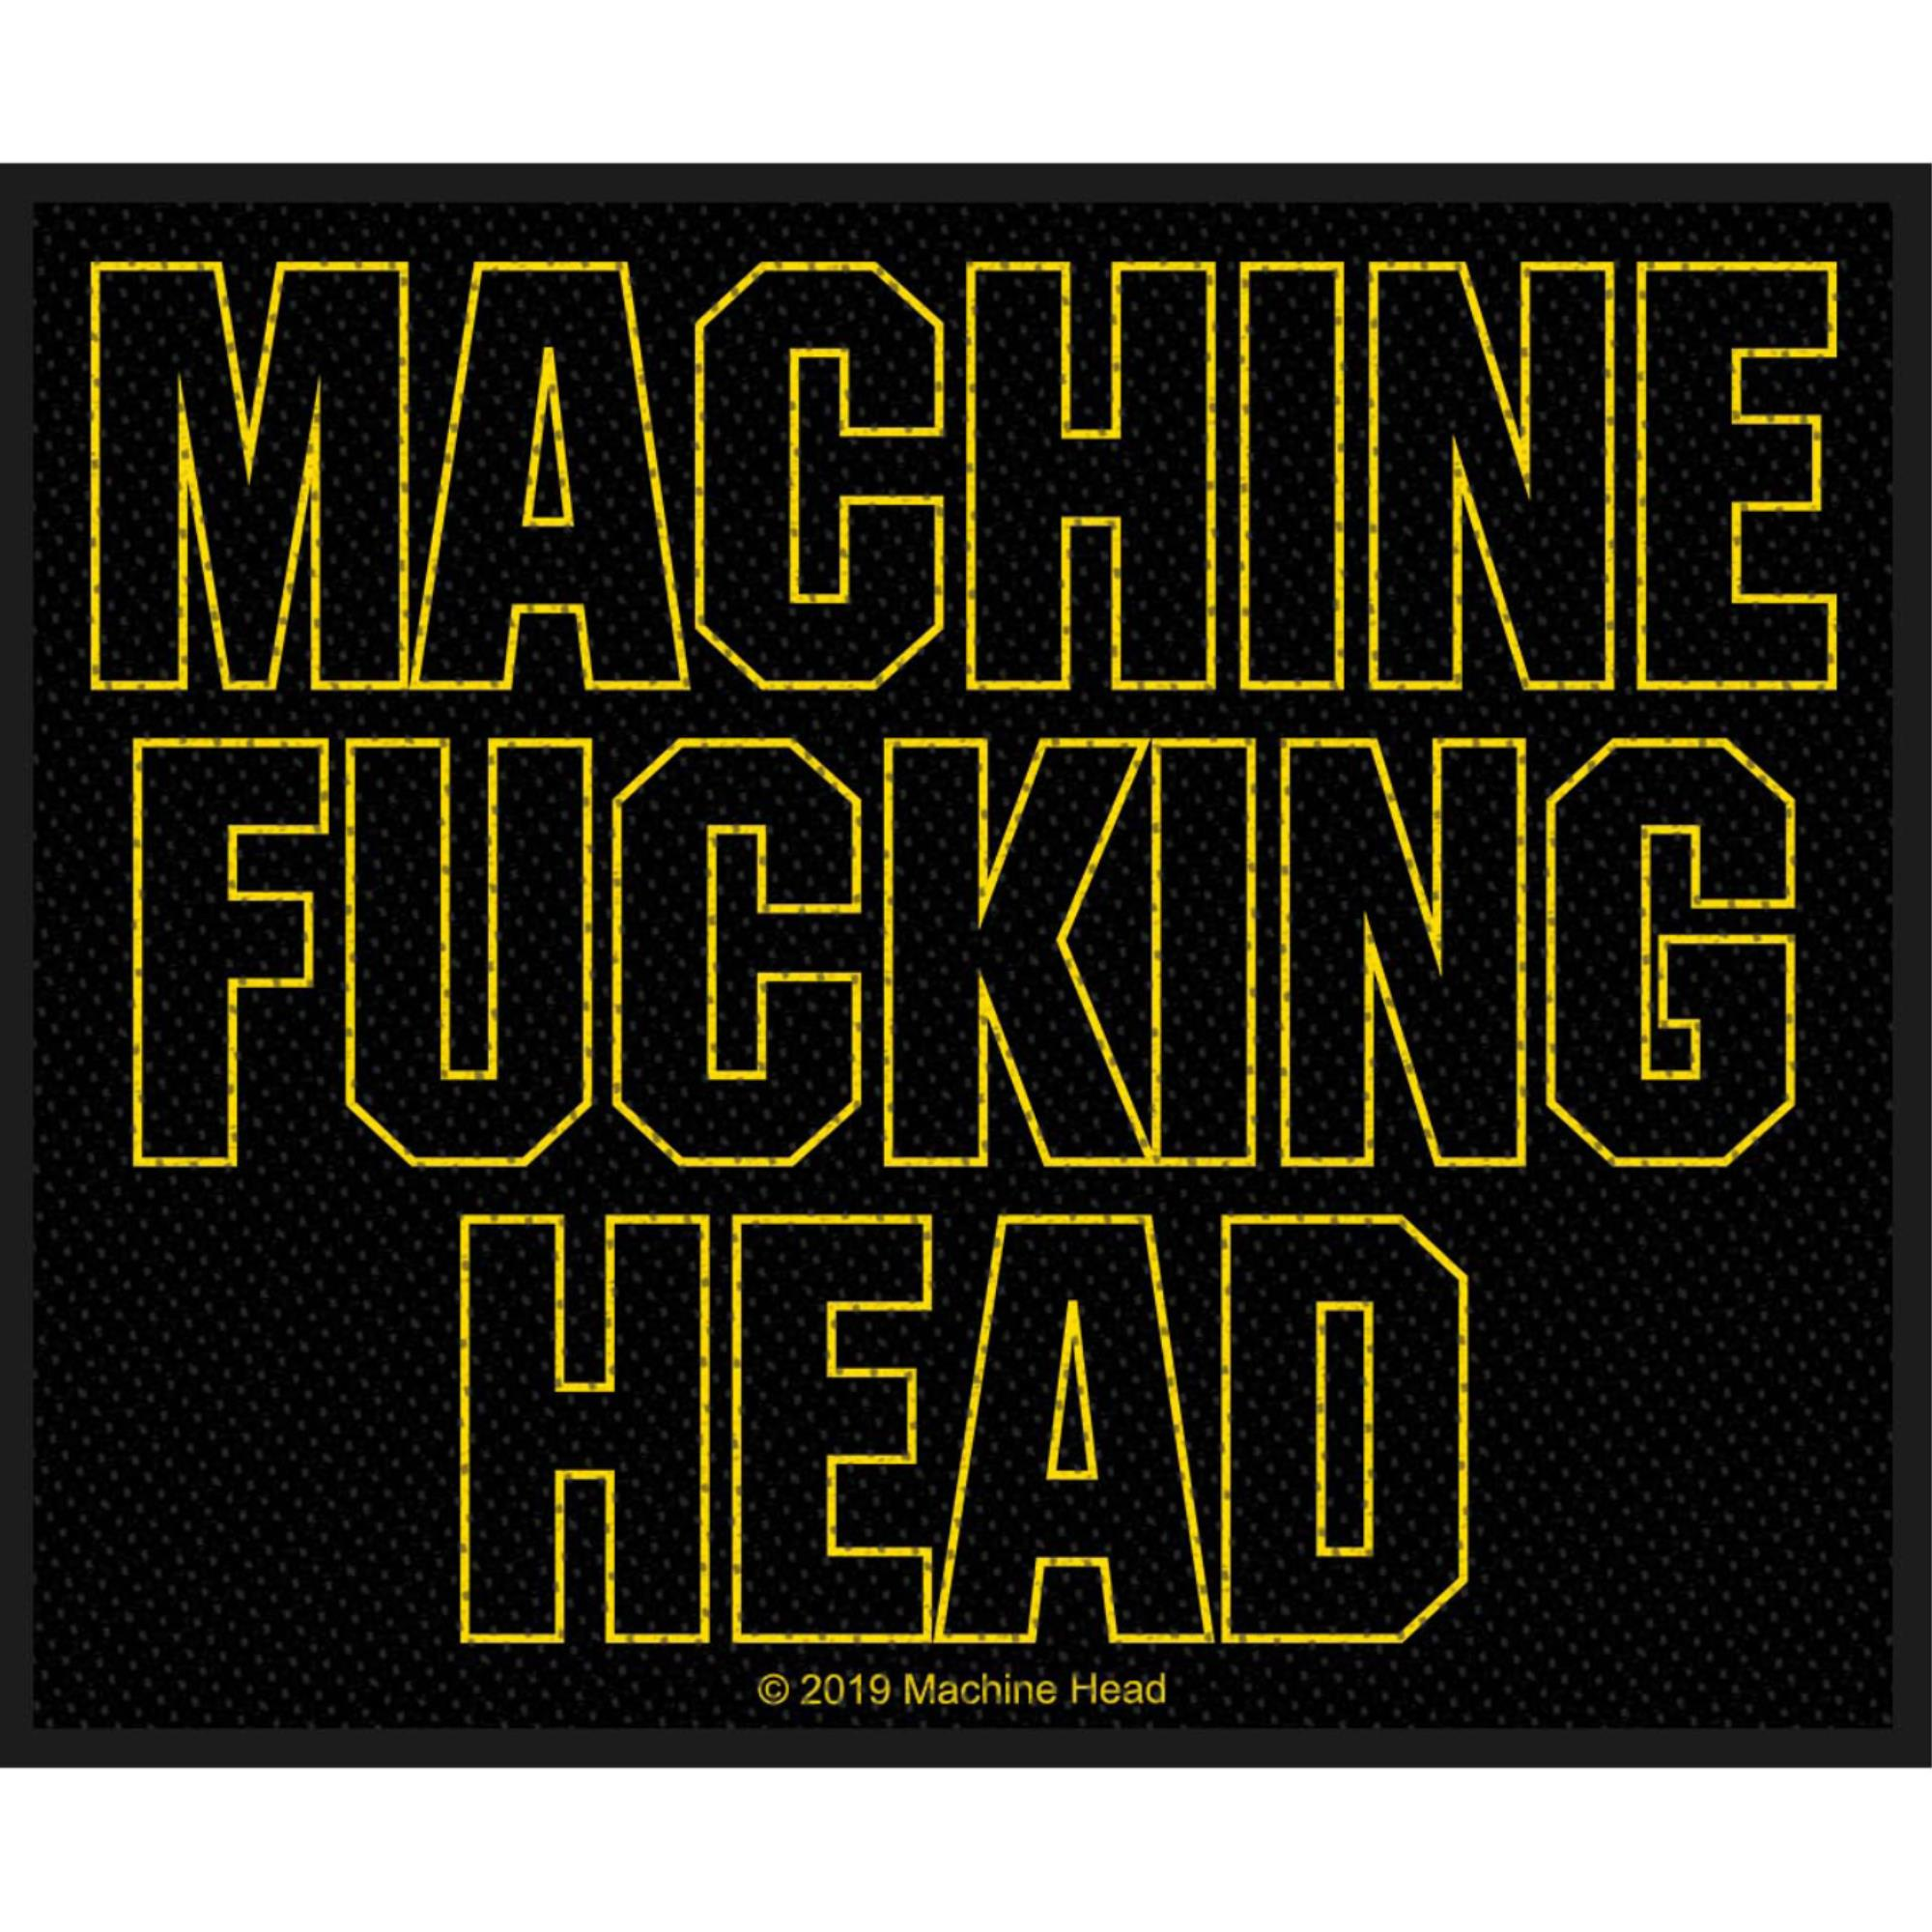 Machine Fucking Head Patch